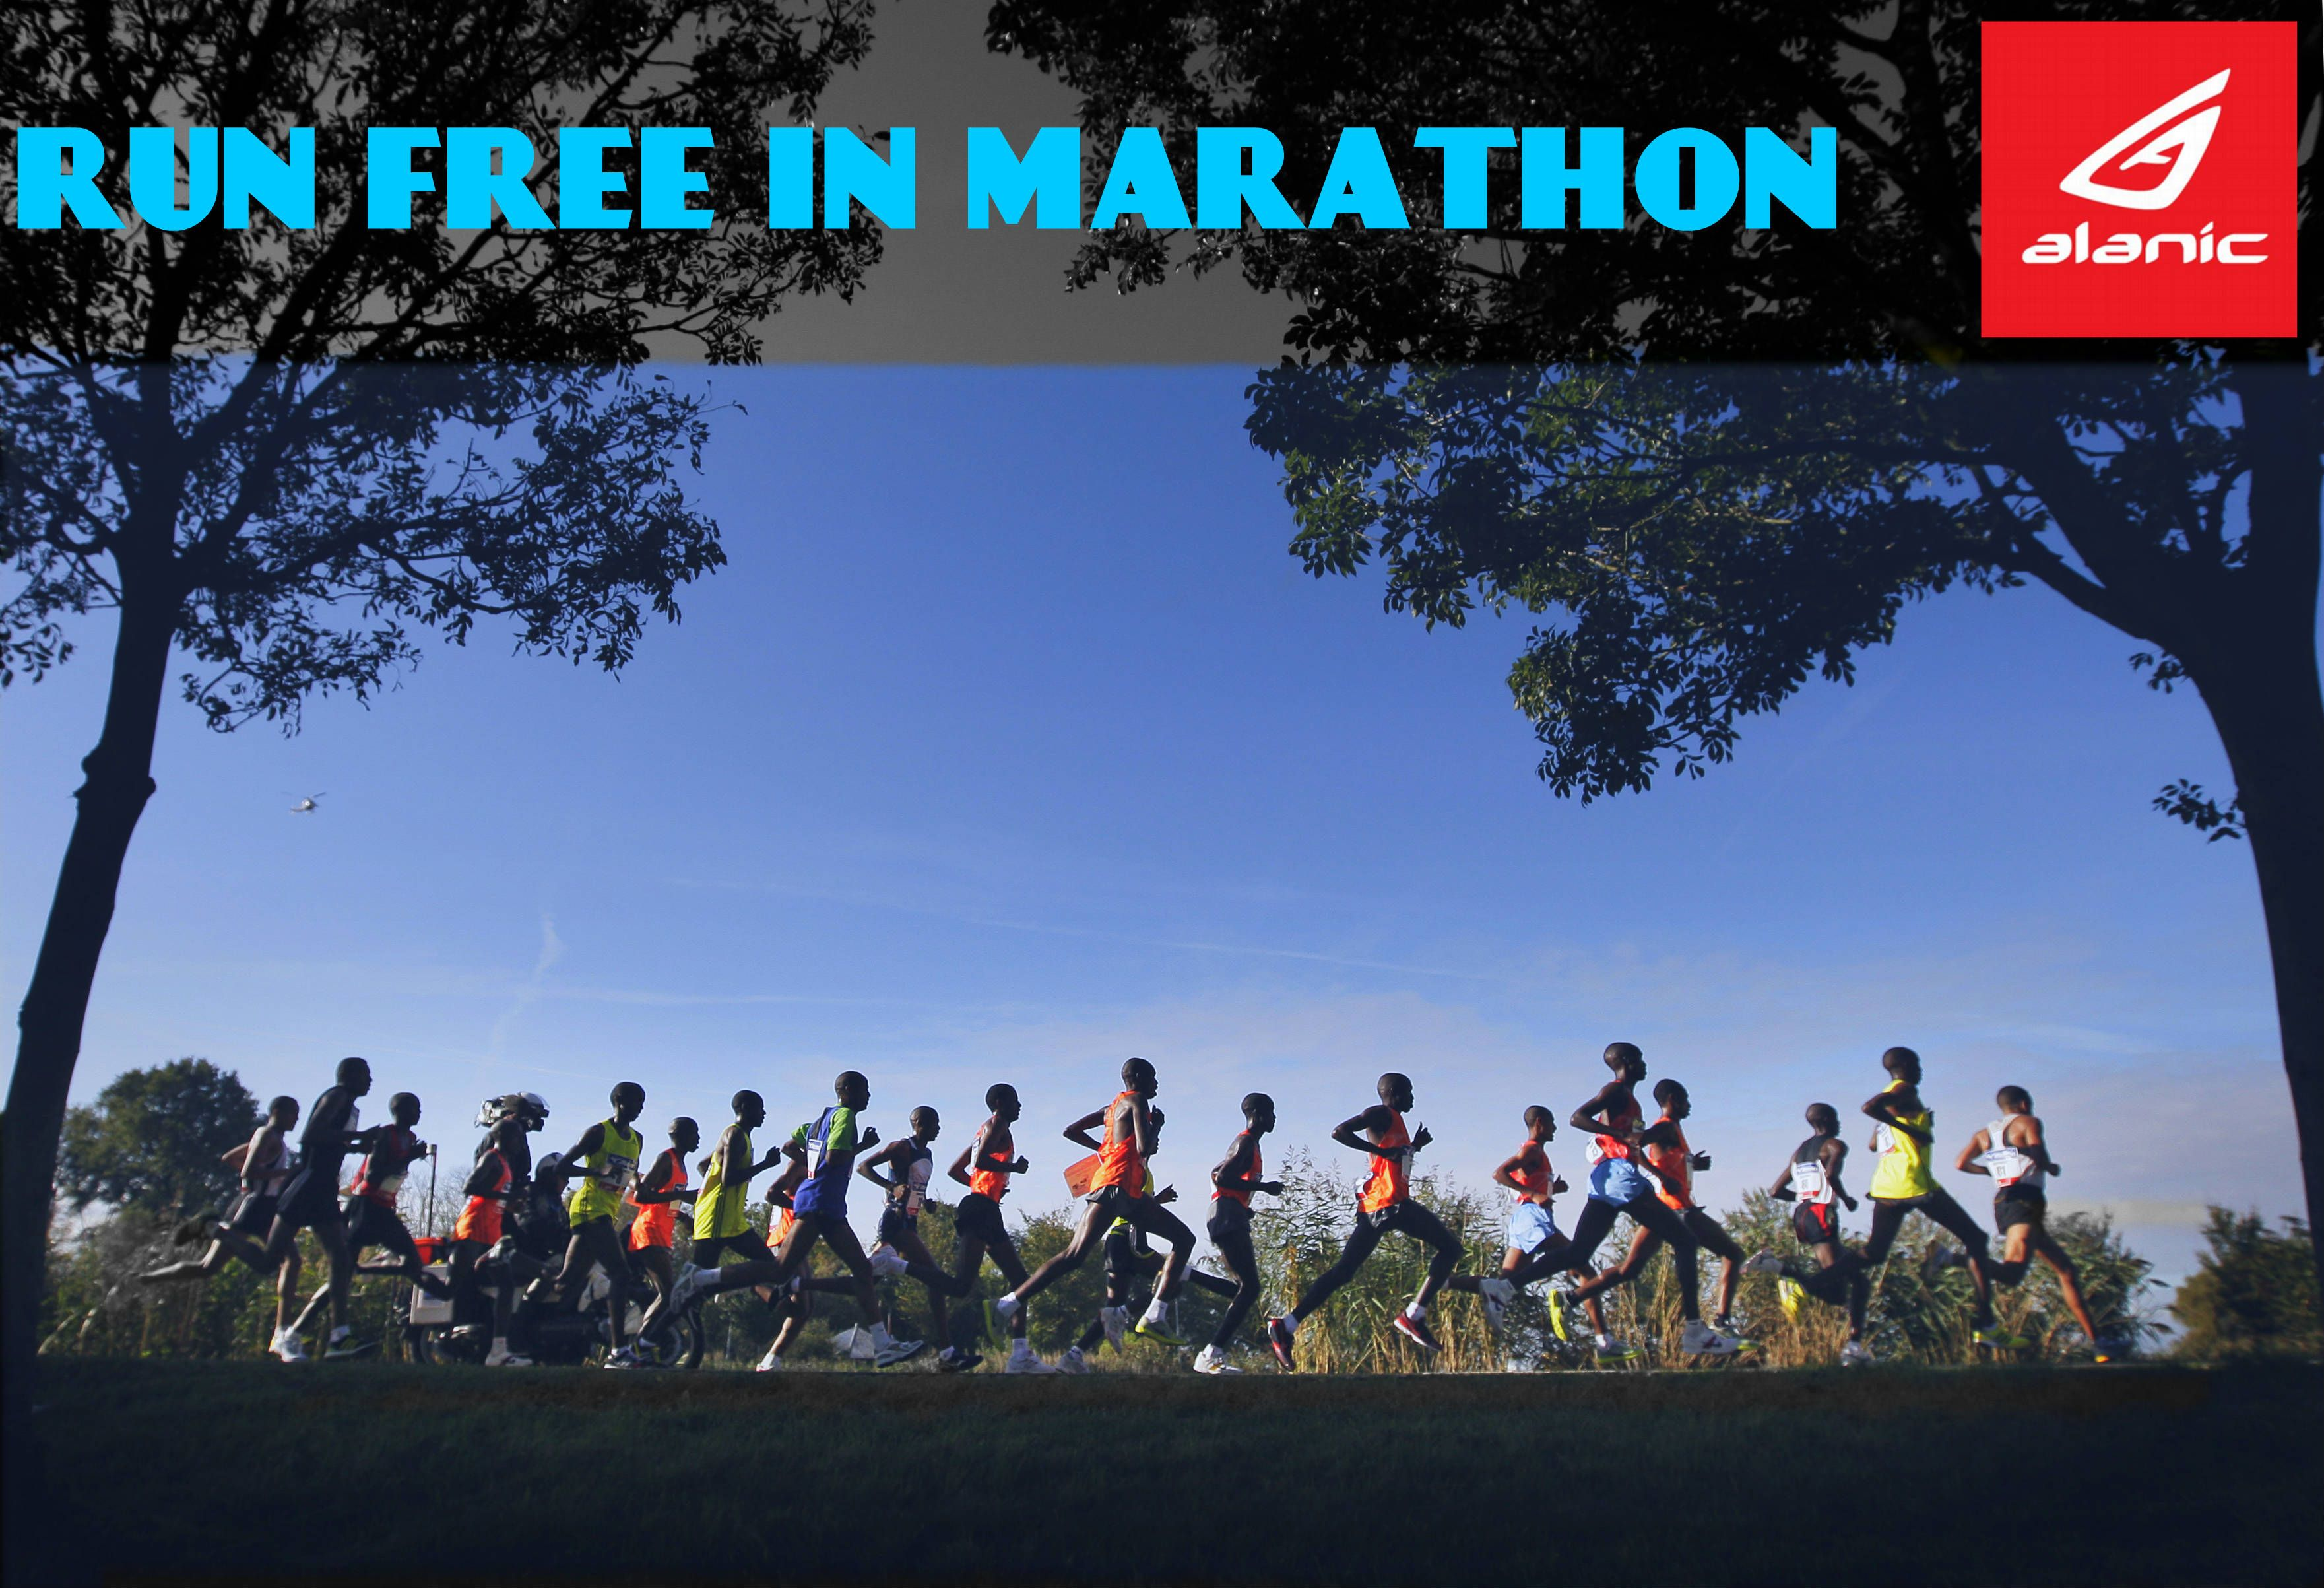 Run freely in your marathon never look back